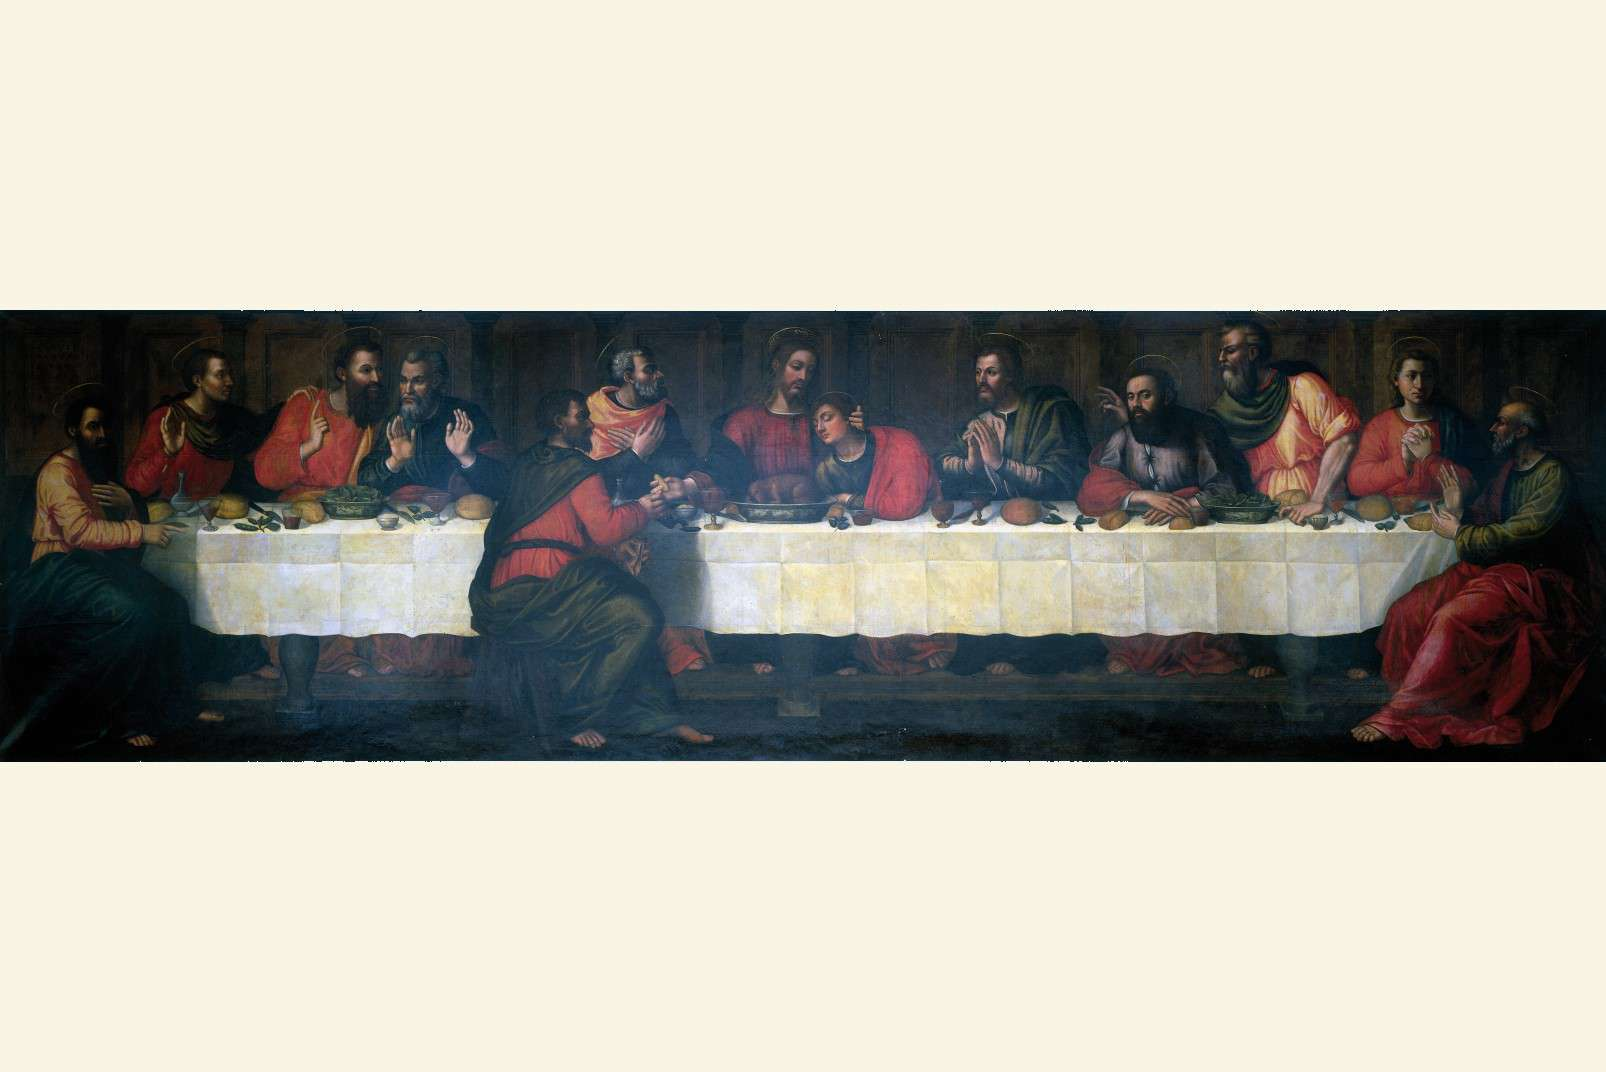 Last Supper by Plautilla Nelli - Adopt an Apostle - The complete painting